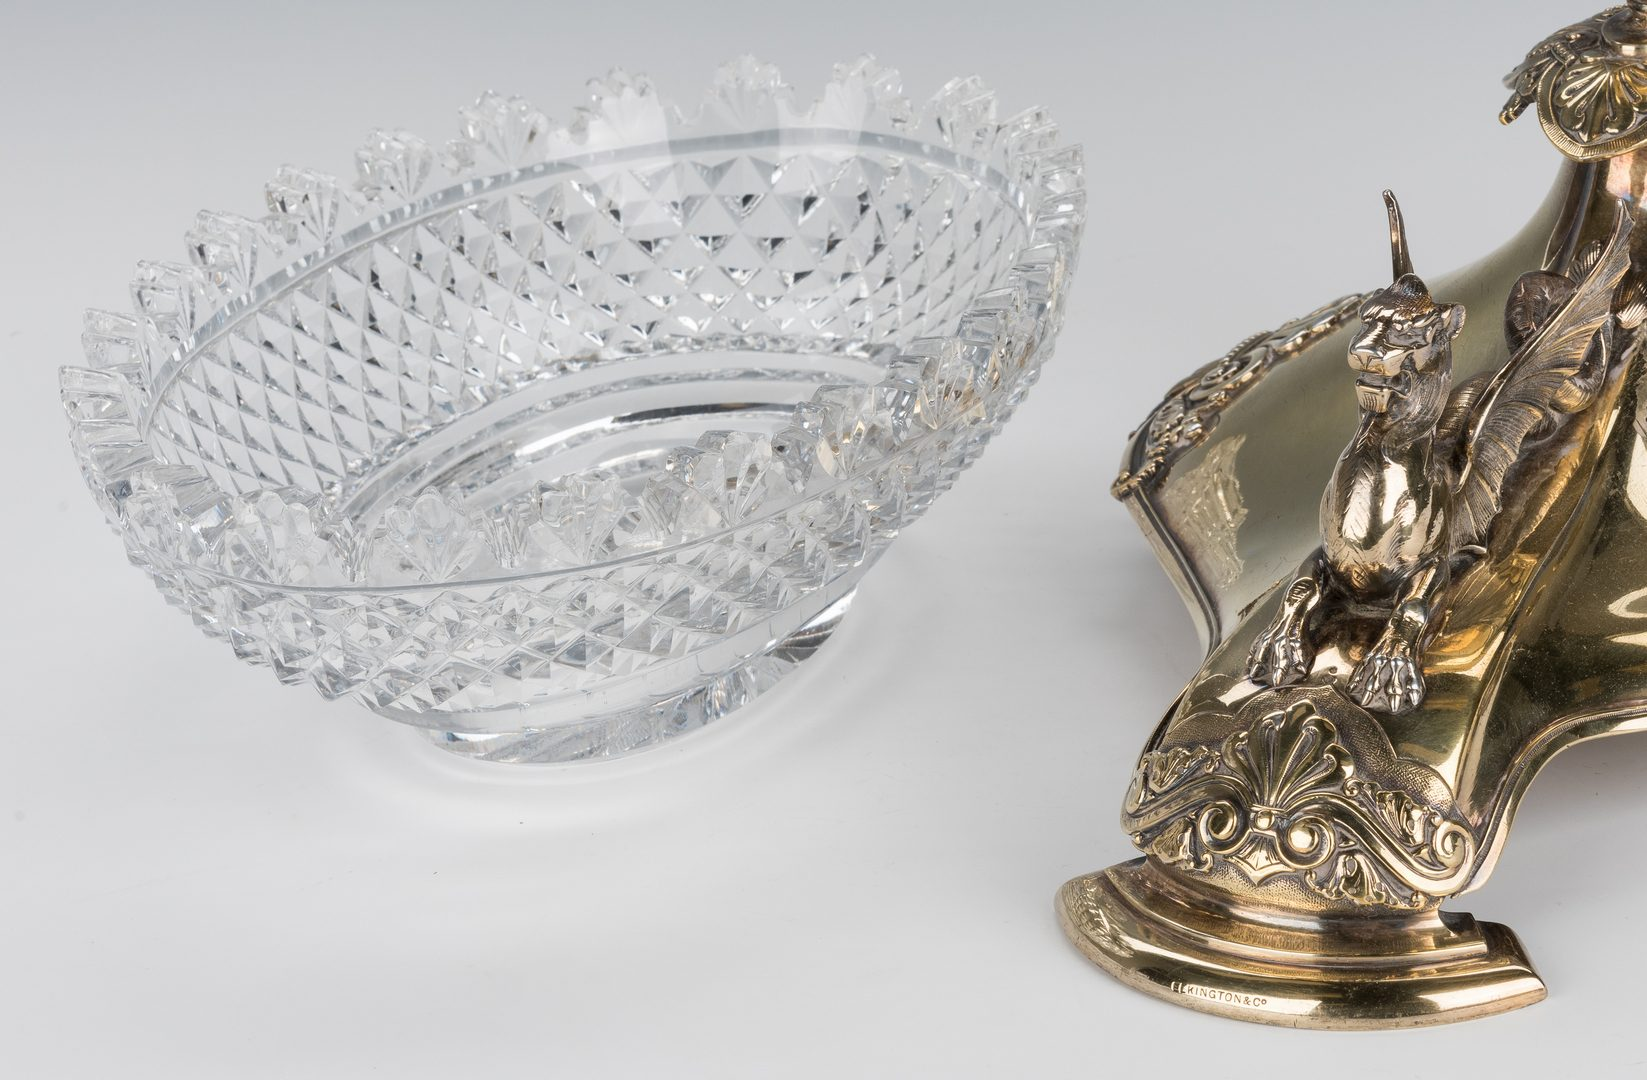 Lot 69: Elkington Gilt Centerpiece with Cut Glass Bowl